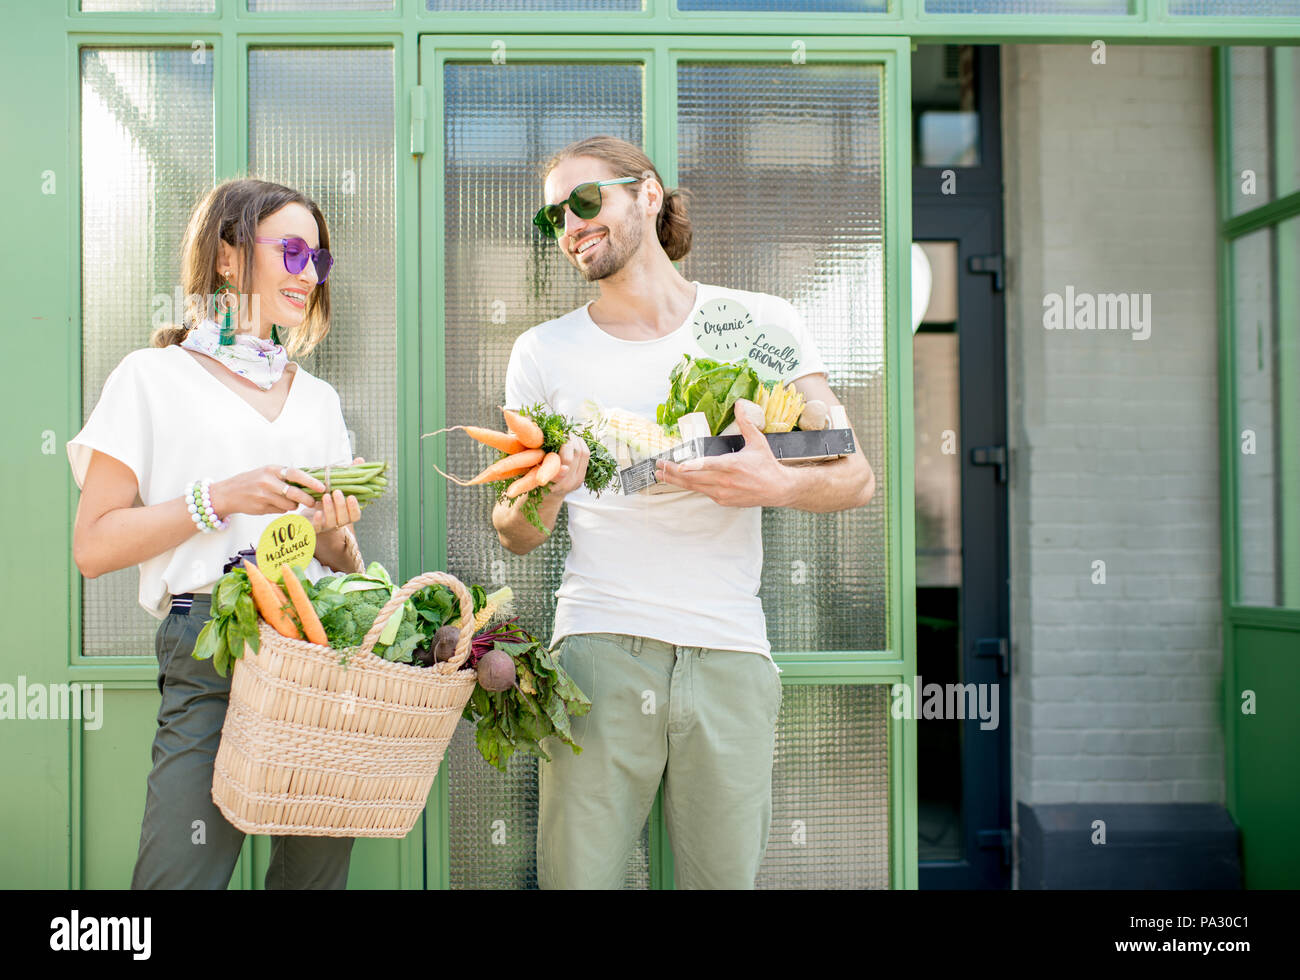 Young vegetarian couple standing together with bag and box full of fresh raw products from the local market outdoors on the green background - Stock Image